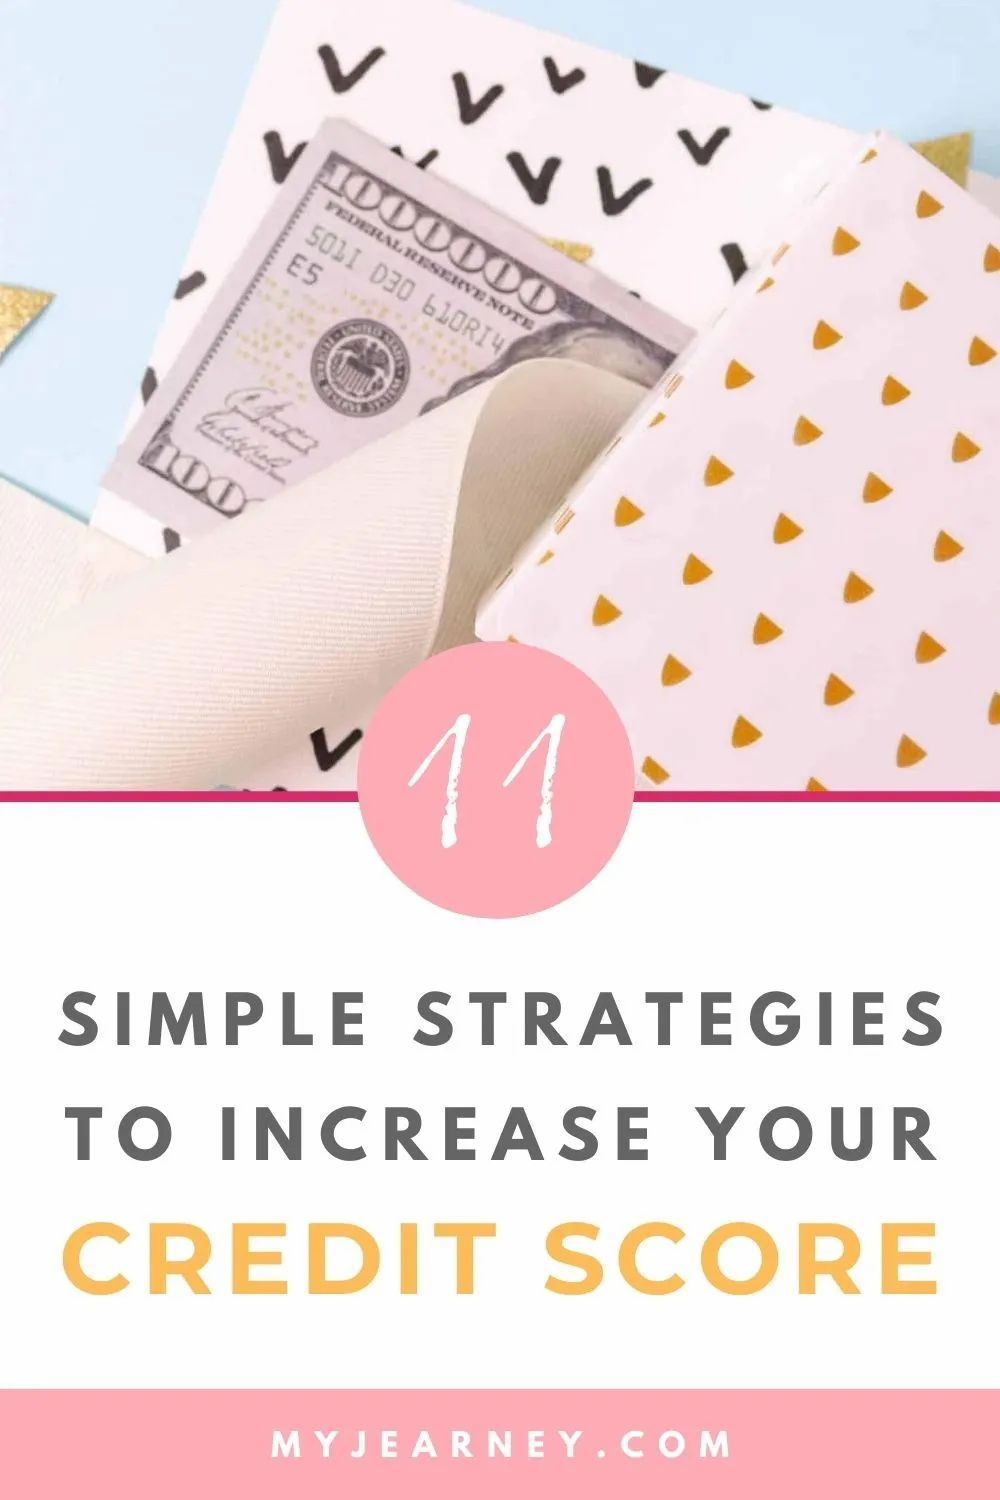 11 Simple Strategies To Increase Your Credit Score In 2020 Credit Score Money Saving Mom Improve Your Credit Score